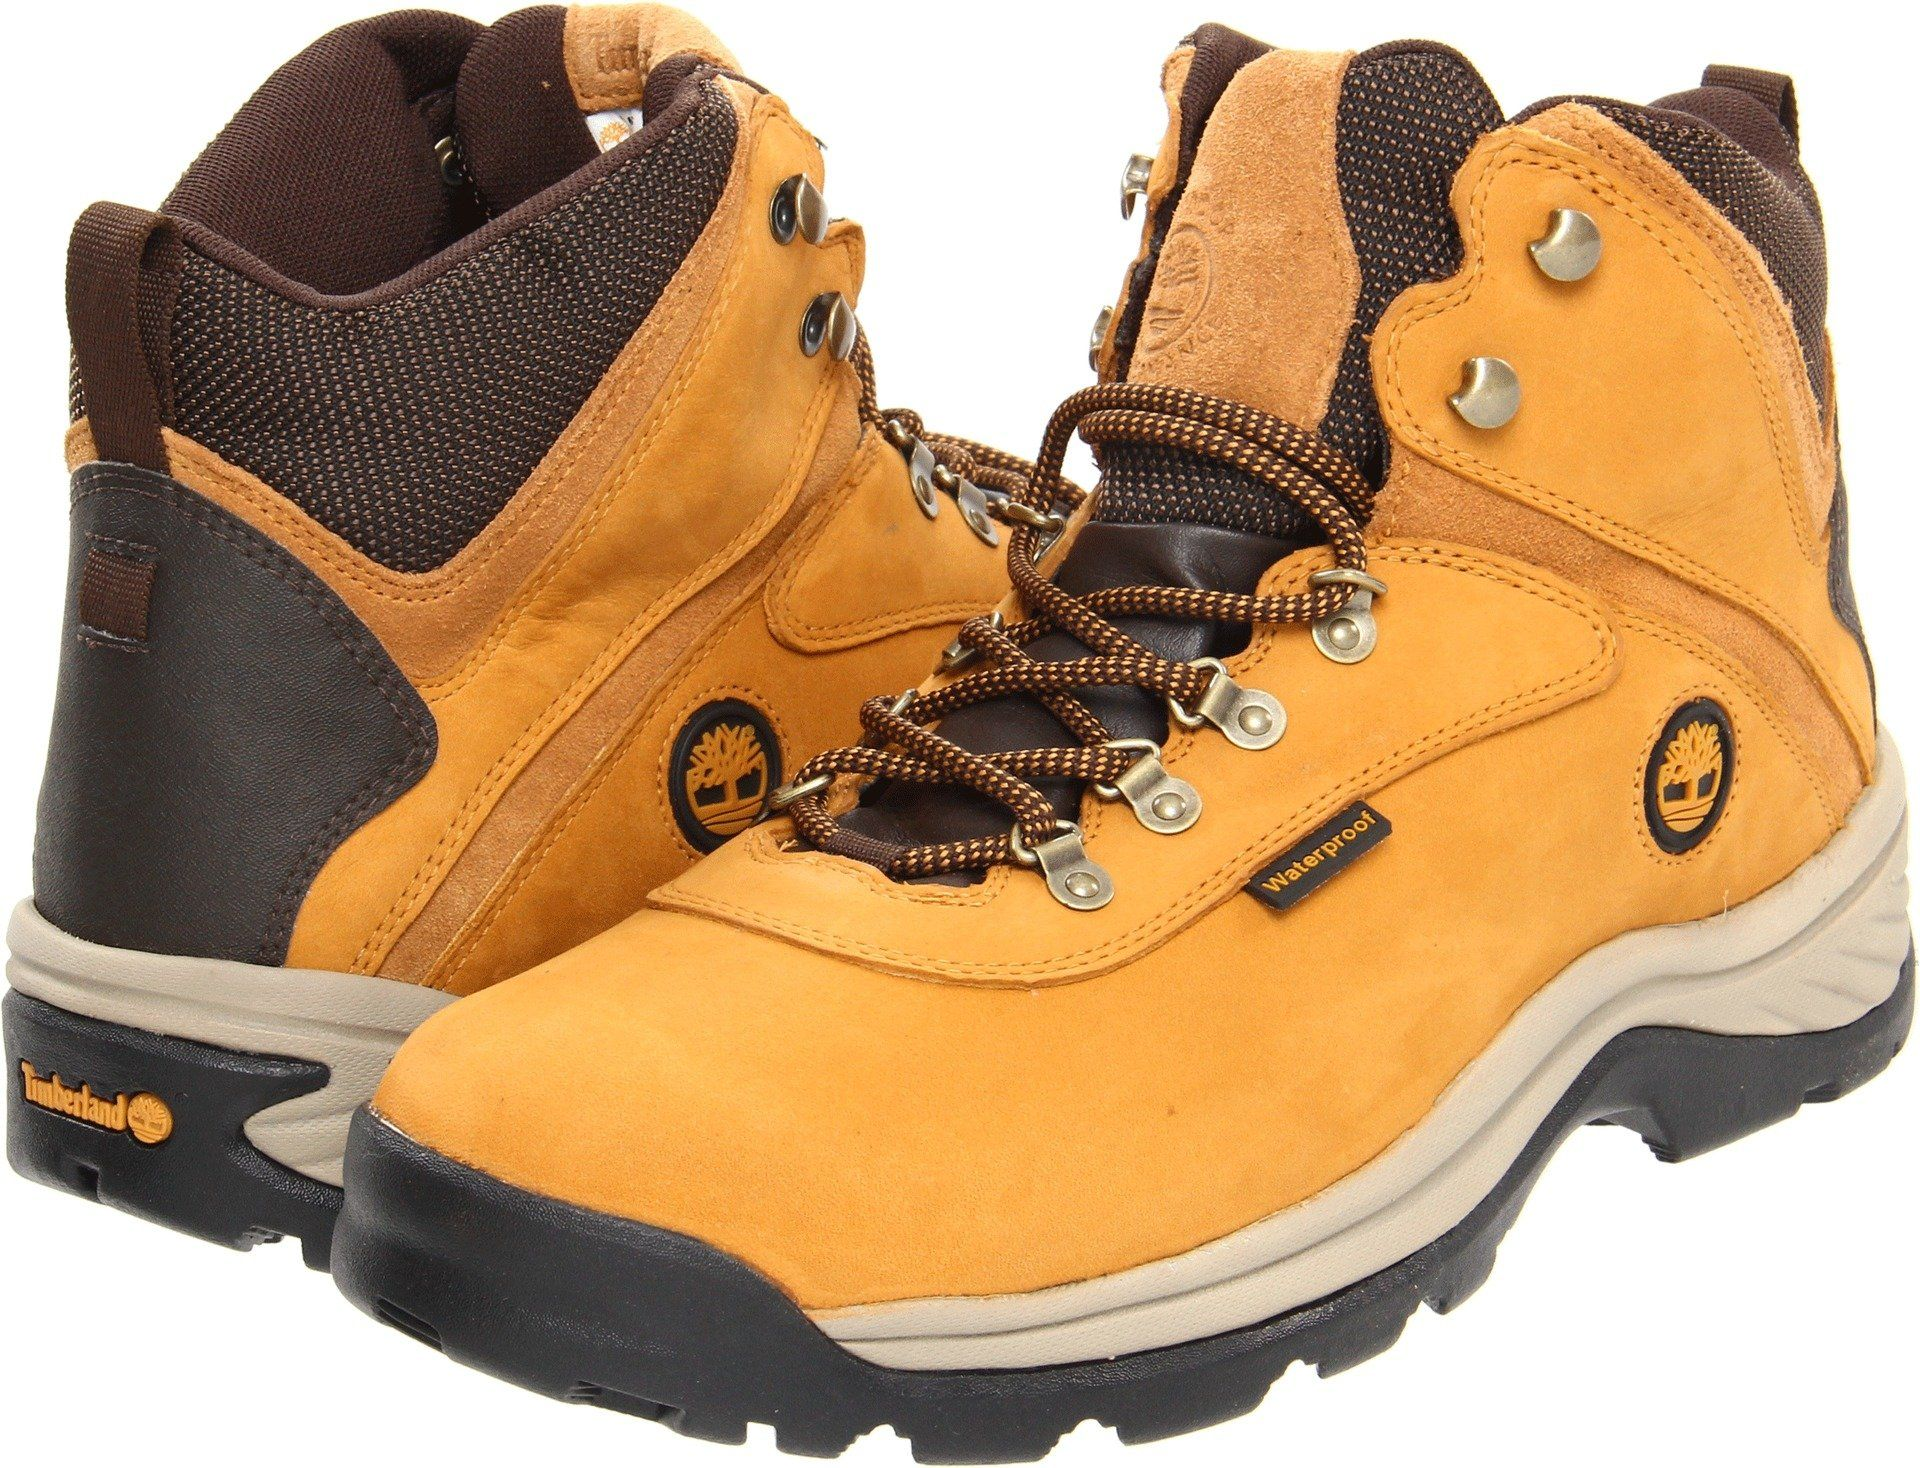 45078a66df6 Timberland 14176 Mens Mid White Ledge WP Boot Wheat 10.5 W US ...